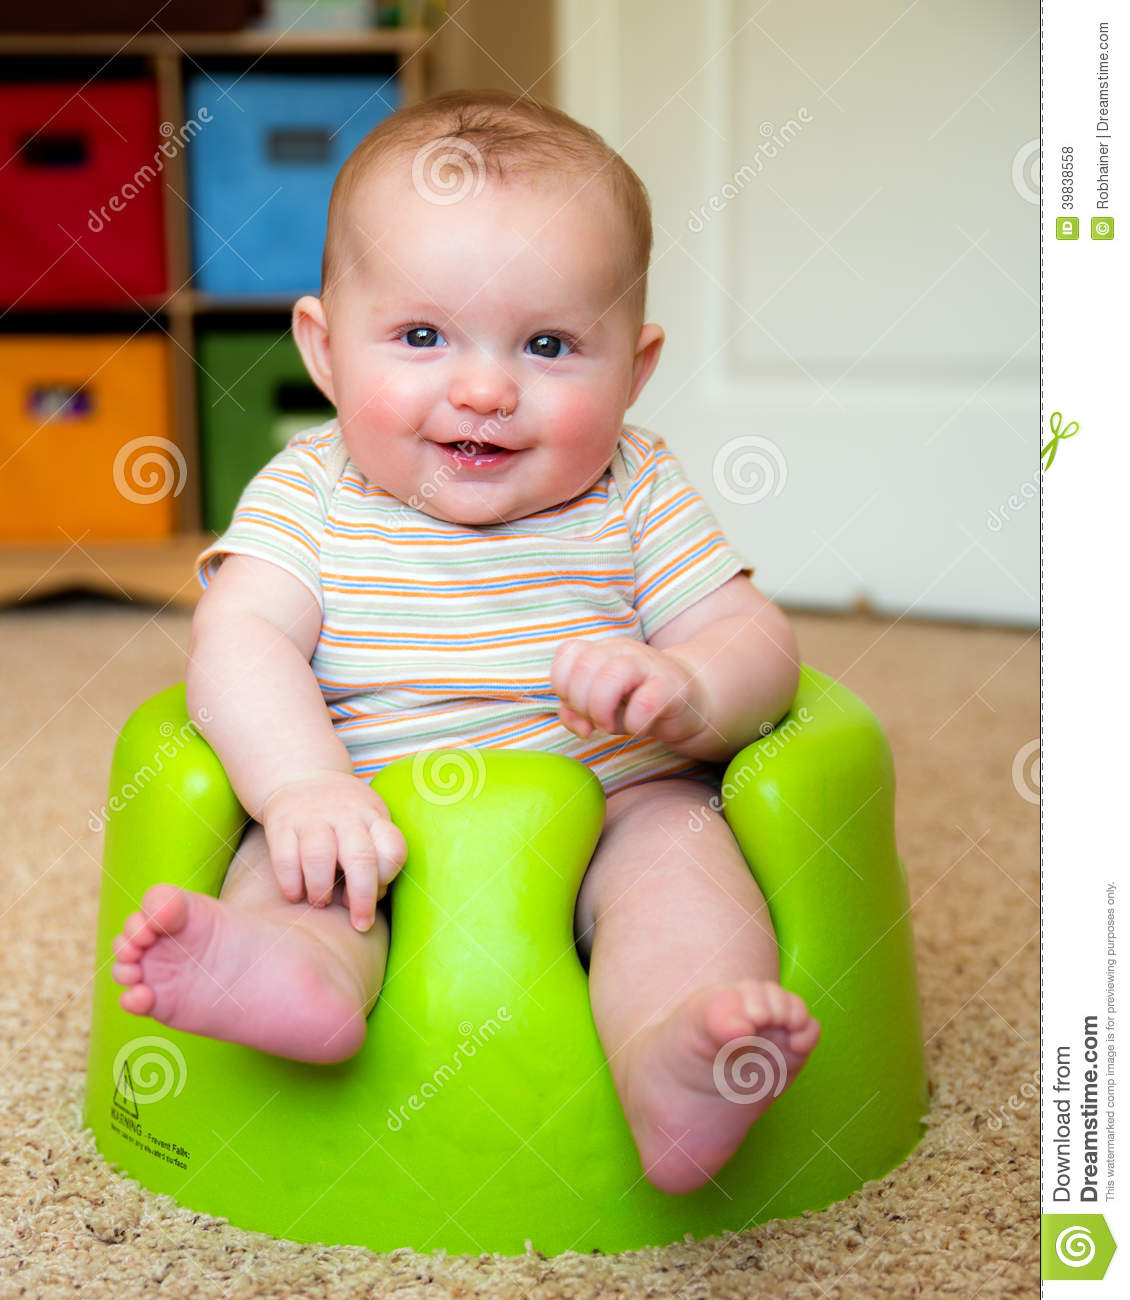 Baby Using Training Bumbo Seat To Sit Up Stock Photo